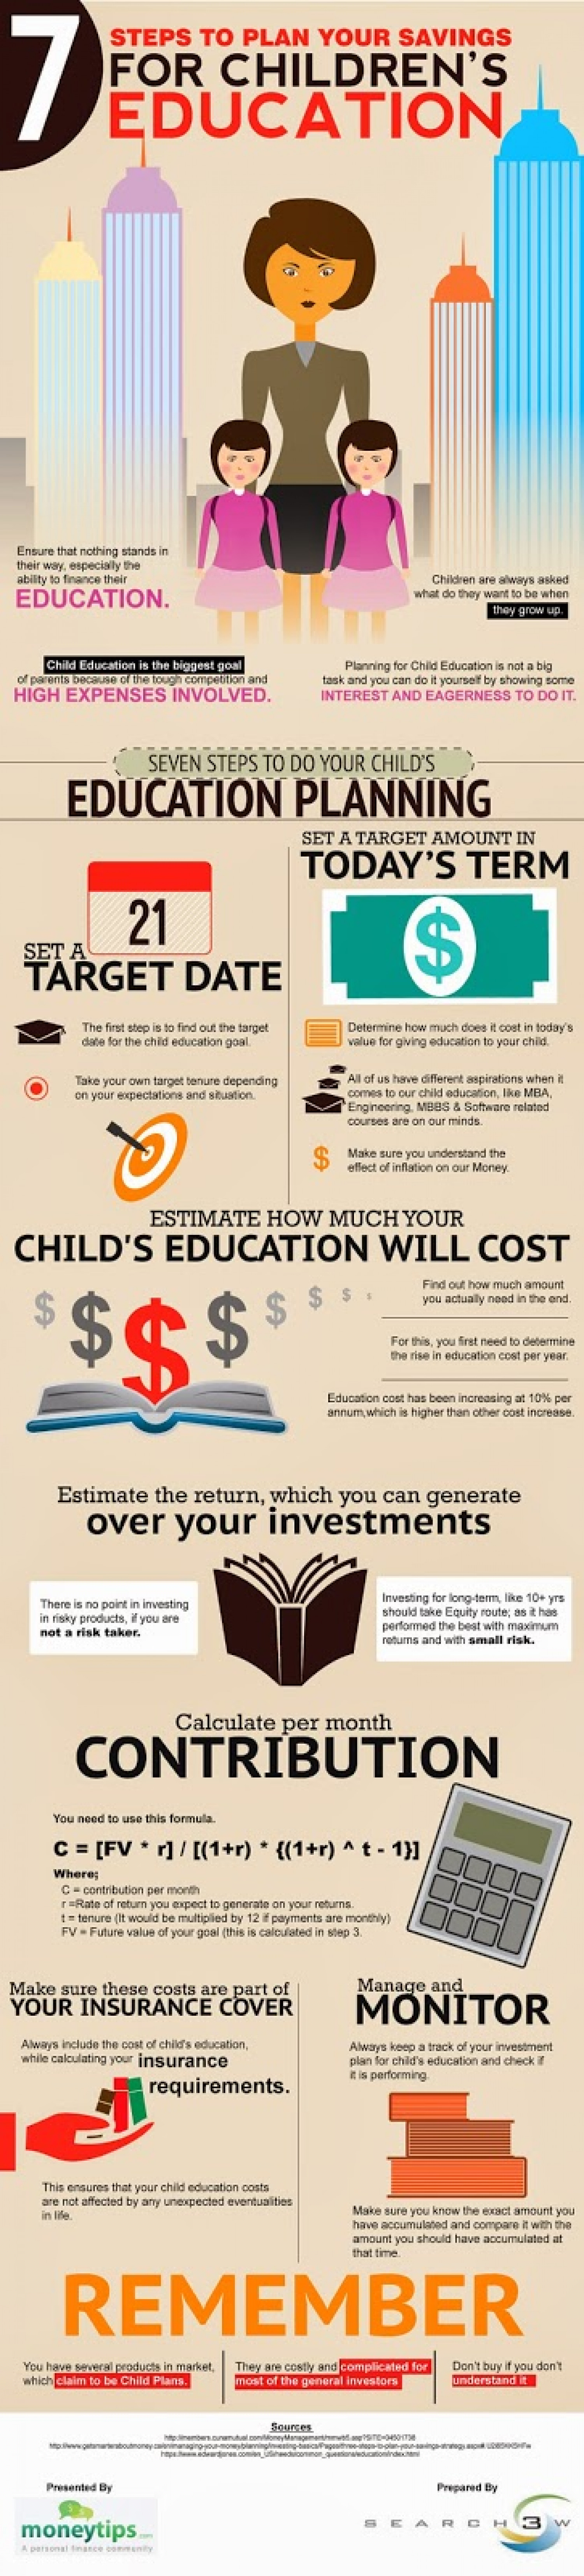 7 Steps to Plan your Savings for Children's Education  Infographic